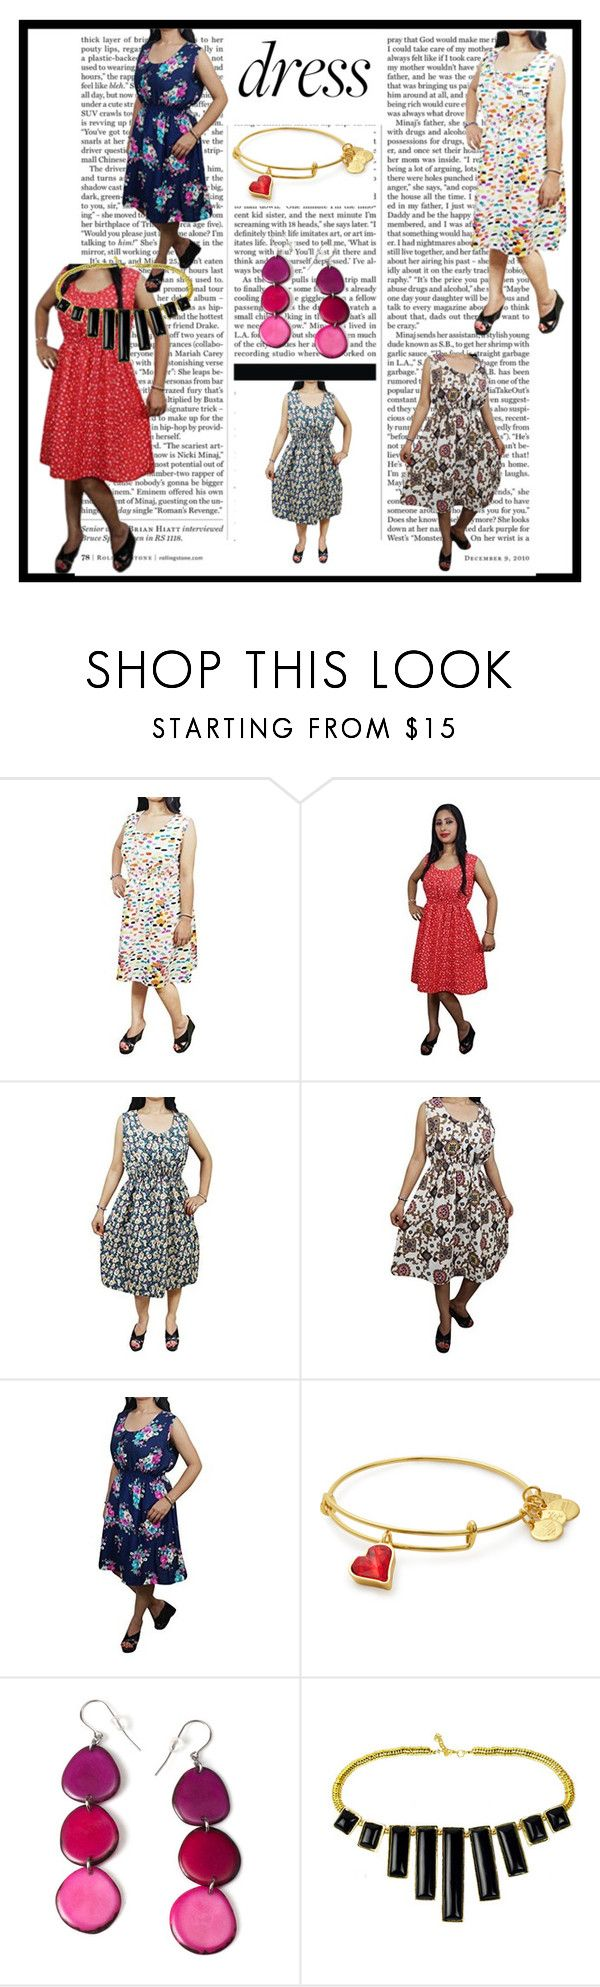 WOMEN SUMMER CASUAL MIDI DRESS by lavanyas-trendzs on Polyvore featuring Encanto and Nicki Minaj  http://www.polyvore.com/women_summer_casual_midi_dress/set?id=221539944  #dress #women #fashion #mididress #bohemian #boho #chic #summer #fancy